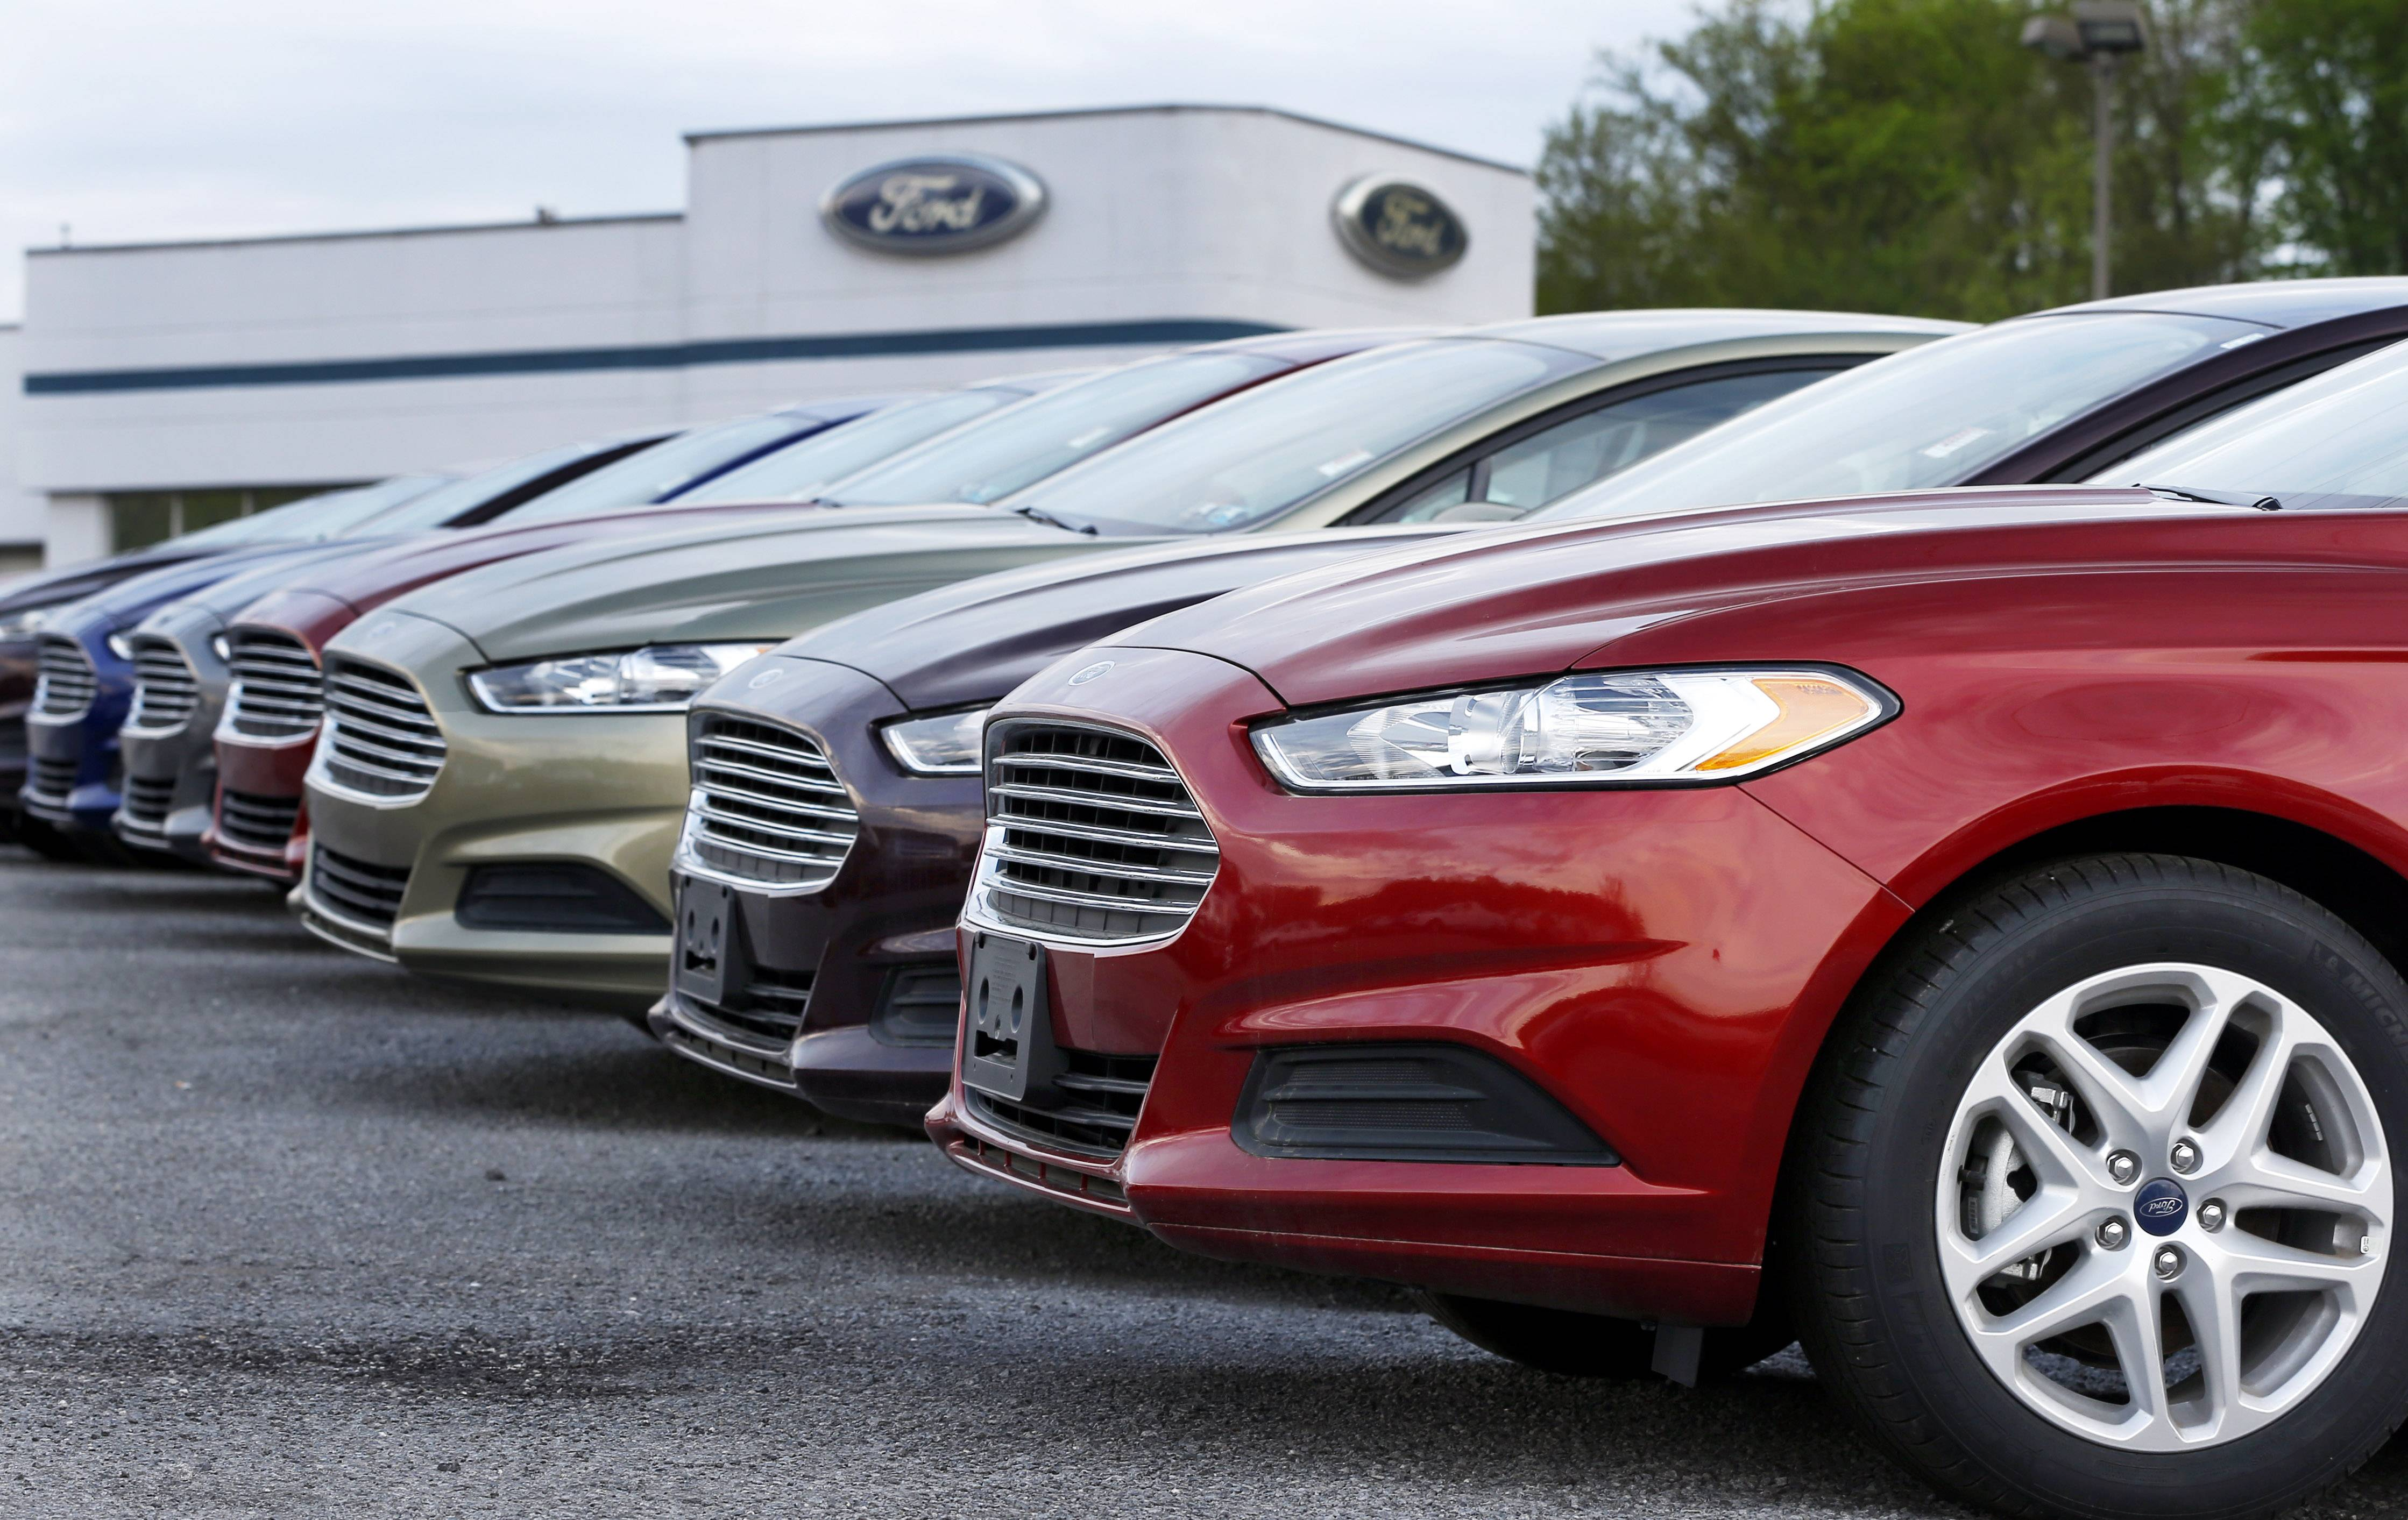 A row of new 2013 Ford Fusions are on display at an automobile dealership in Zelienople, Pa. Chrysler Group LLC reported its best August for U.S. vehicle deliveries in 12 years, while Ford Motor Co., Toyota Motor Corp., Honda Motor Co. and Nissan Motor Co. also posted results that surpassed analysts' projections.